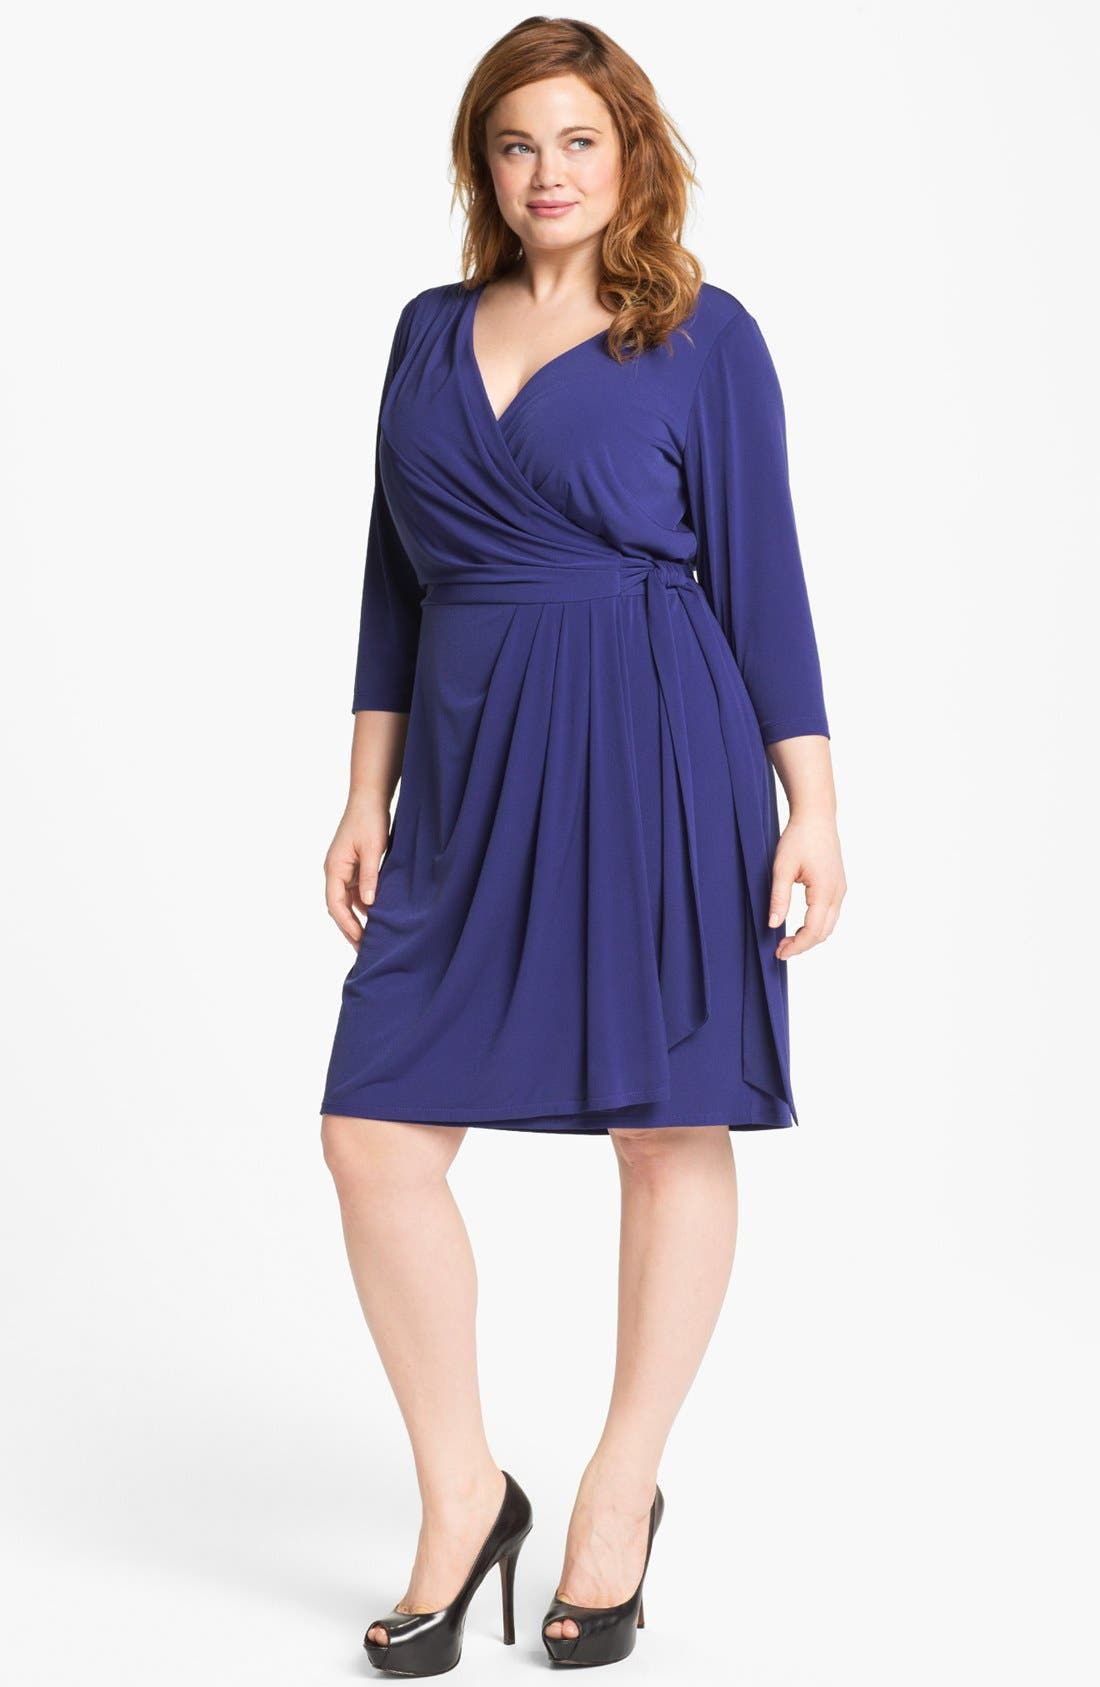 Alternate Image 1 Selected - Suzi Chin for Maggy Boutique Jersey Faux Wrap Dress (Plus Size)